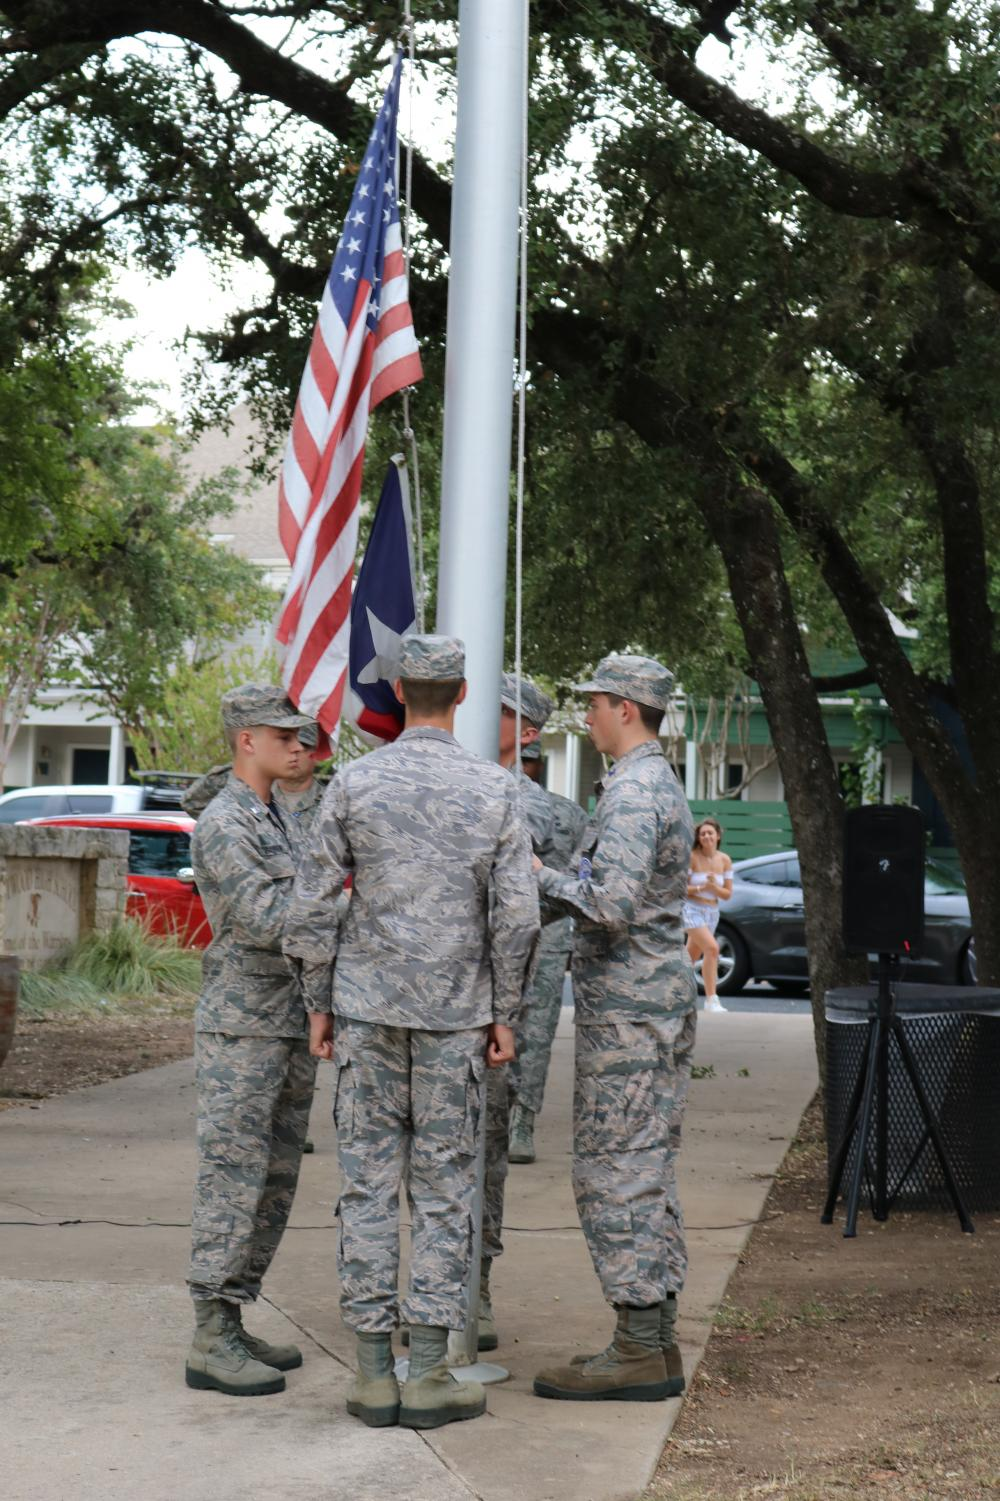 Owen+Darden+%2720+lowers+the+flags+with+the+help+of+three+other+cadets.+JROTC+takes+the+flags+down+every+day+after+school%2C+though+most+days+only+three+cadets+in+total+do+the+job.+